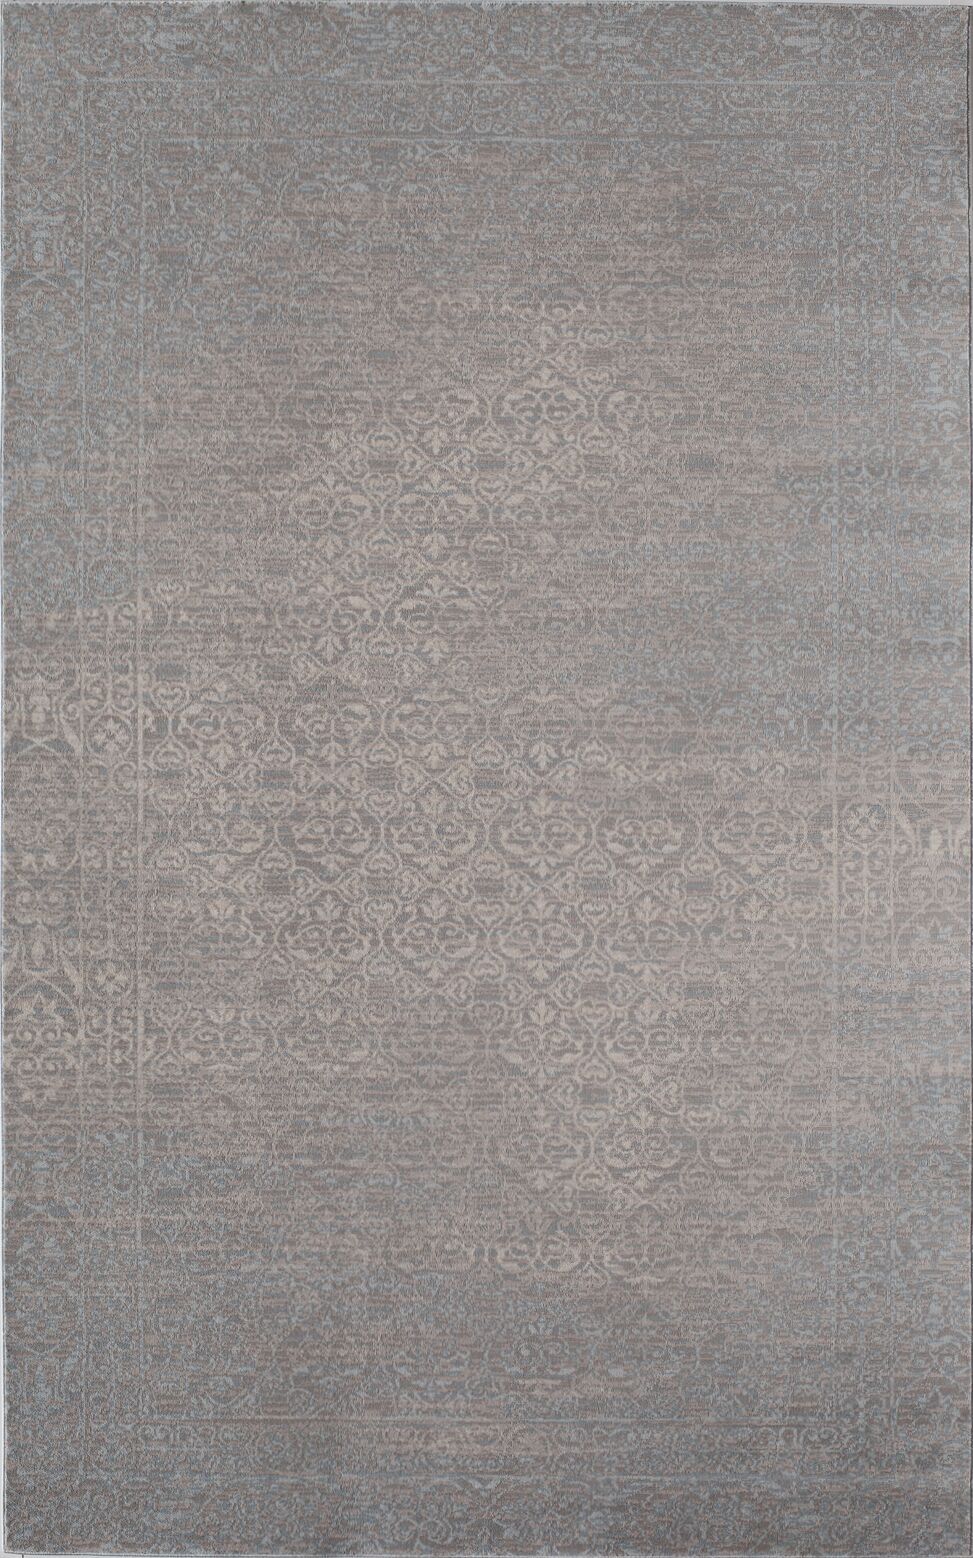 Wilshire Blue/Gray Area Rug Rug Size: Rectangle 5' x 8'